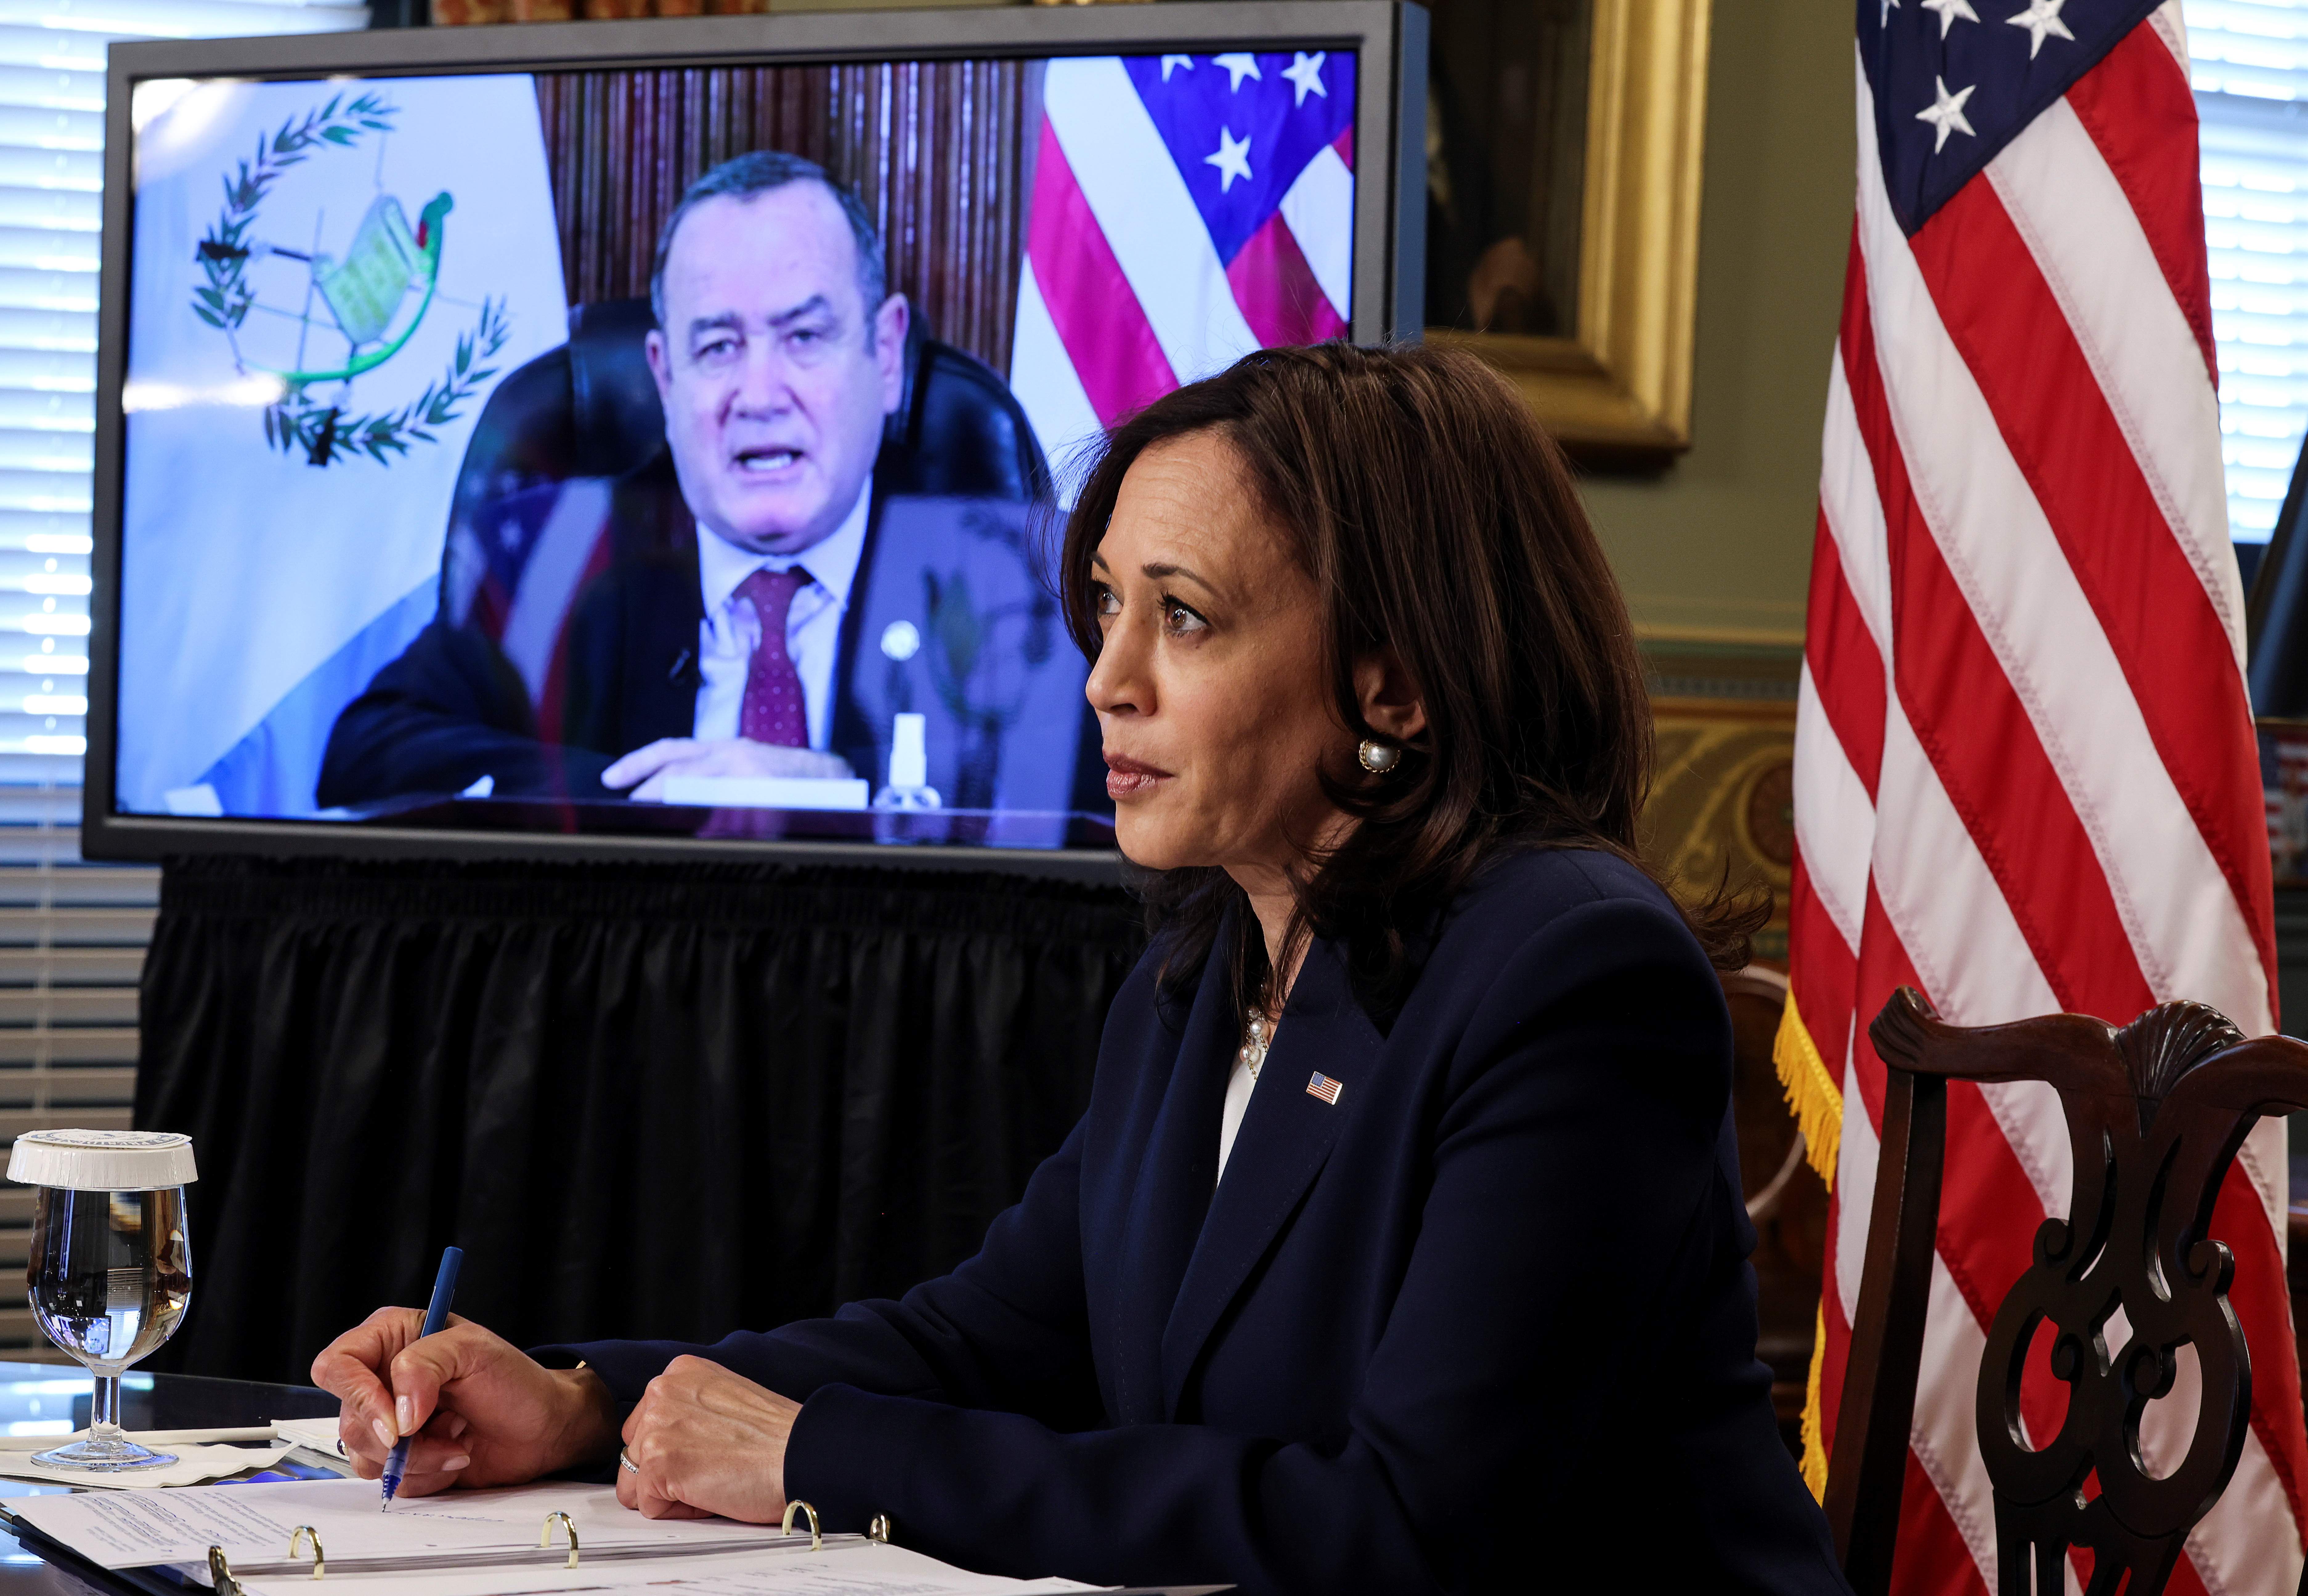 U.S. Vice President Kamala Harris takes notes as she speaks via videoconference with Guatemala's President Alejandro Giammattei to discuss solutions to an increase in migration as she looks for ways to defuse a migrant crisis at the U.S. border with Mexico, in the Eisenhower Executive Office Building at the White House in Washington, U.S., April 26, 2021. REUTERS/Evelyn Hockstein